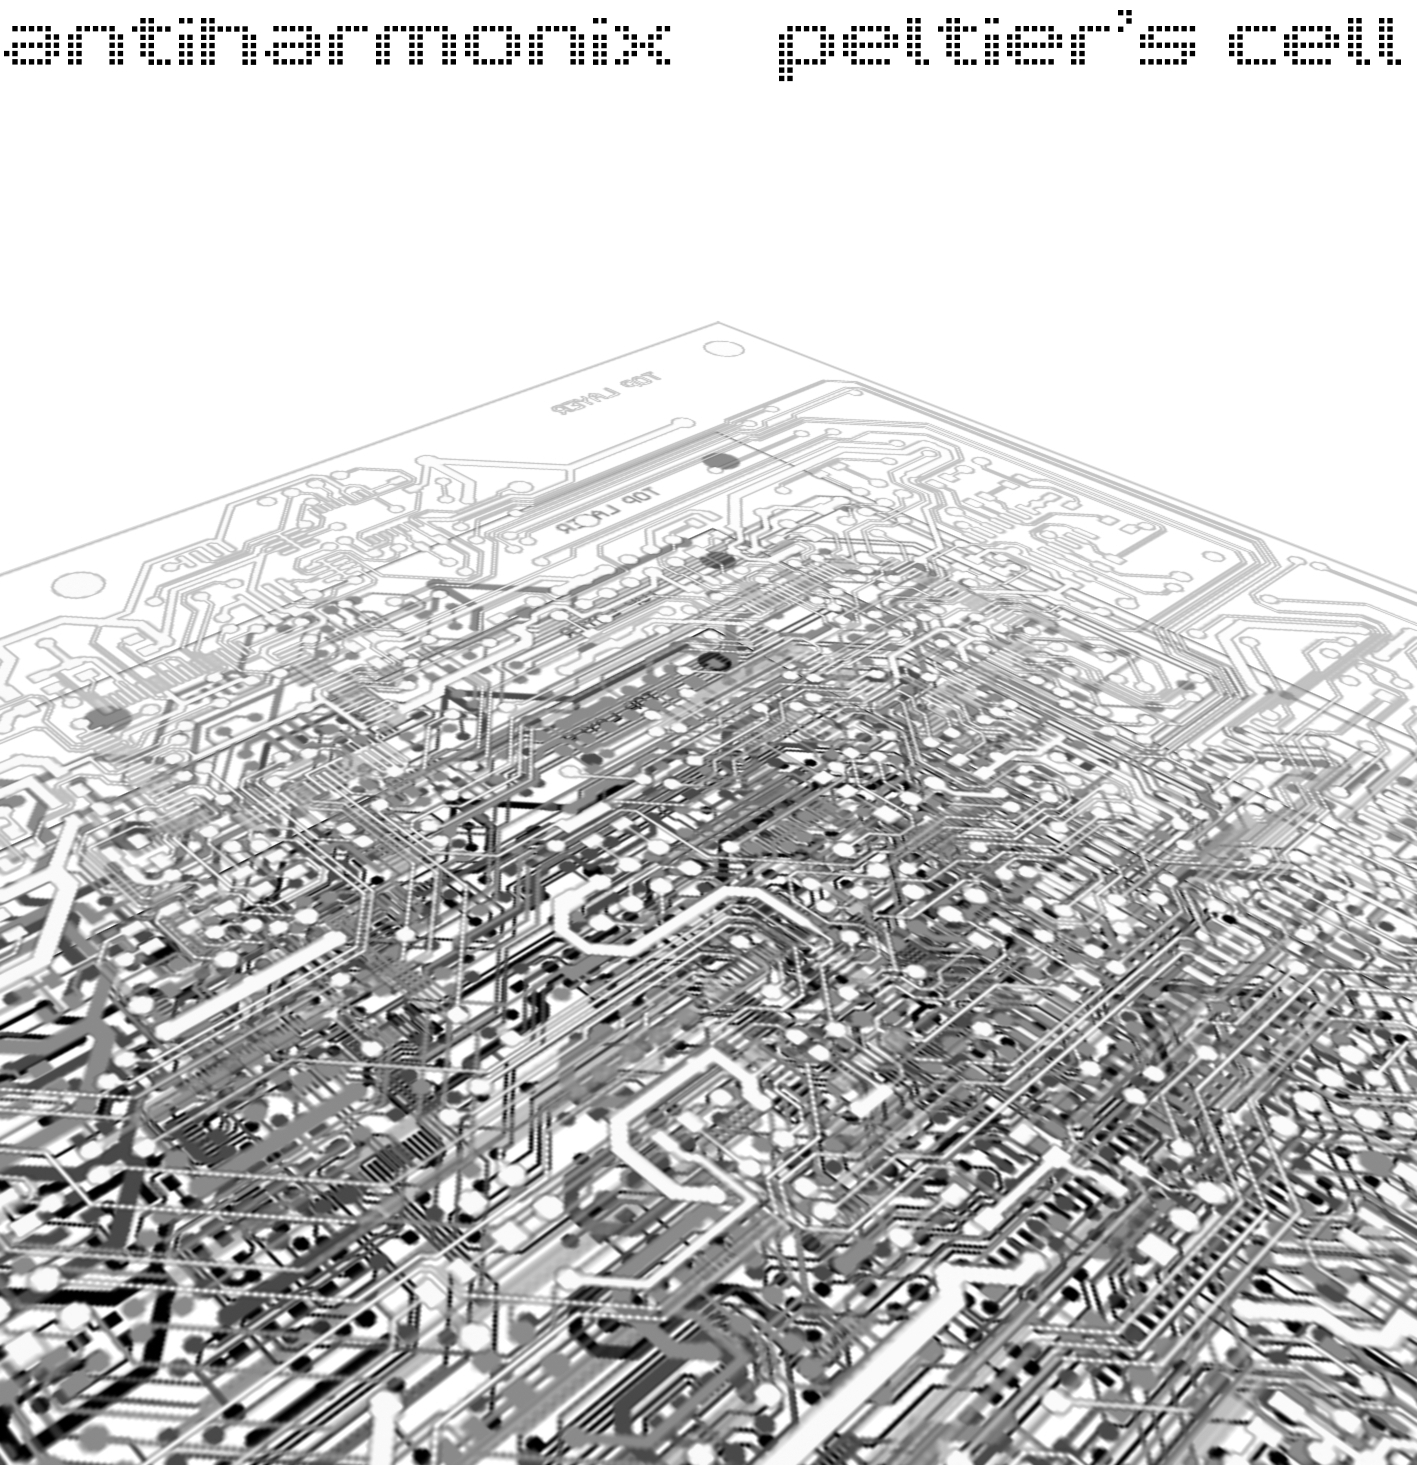 chill07-07 - Antiharmonix - Peltier's Cell